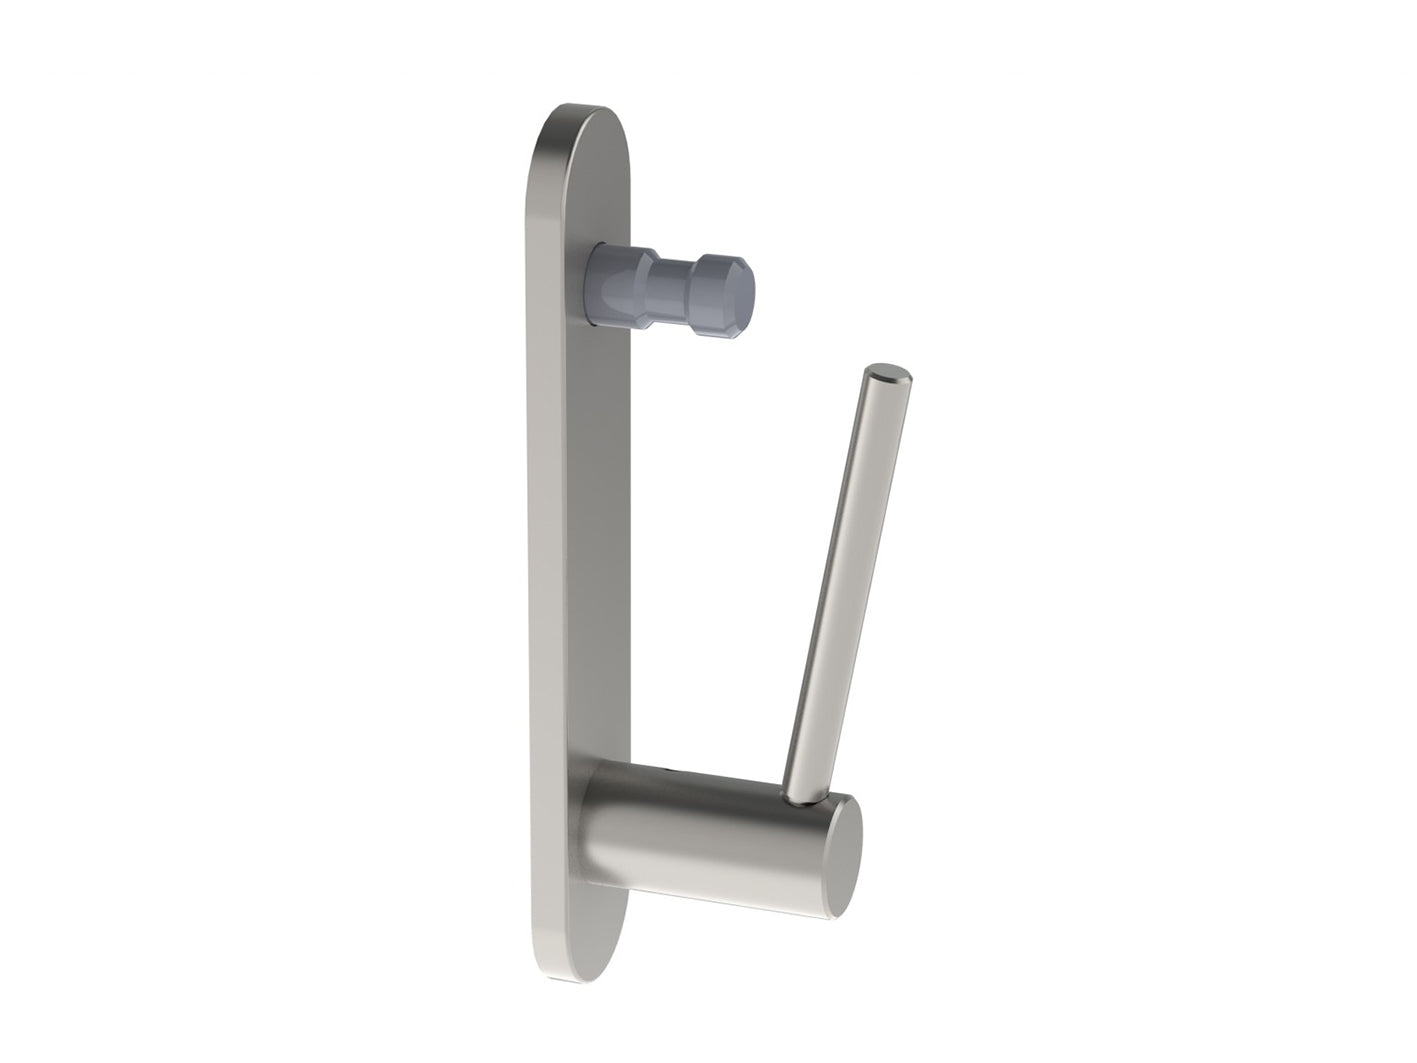 extra support arm for brackets for 30mm curtain poles